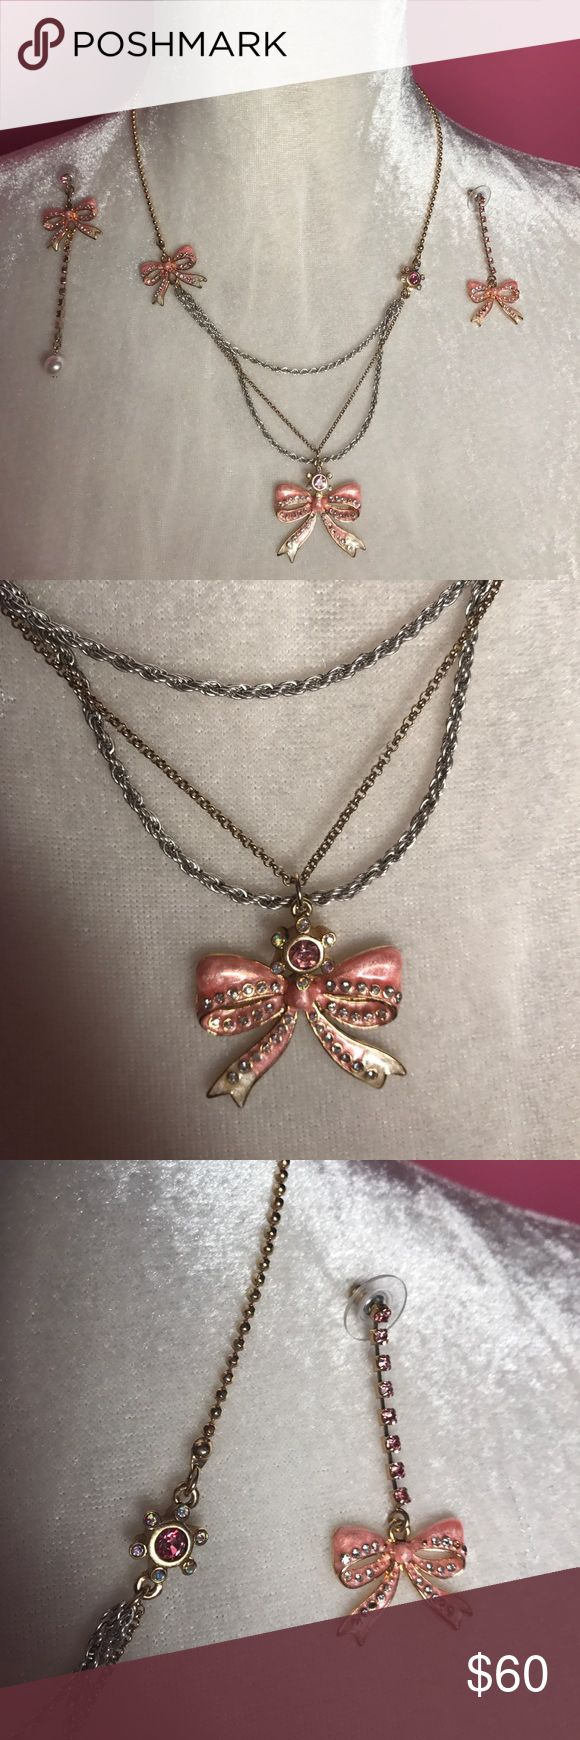 Betsey Johnson Matching Necklace and Earring Set Betsey Johnson Matching Necklace and Earring Set, gold and pink, two stones missing from one of the earrings Betsey Johnson Jewelry